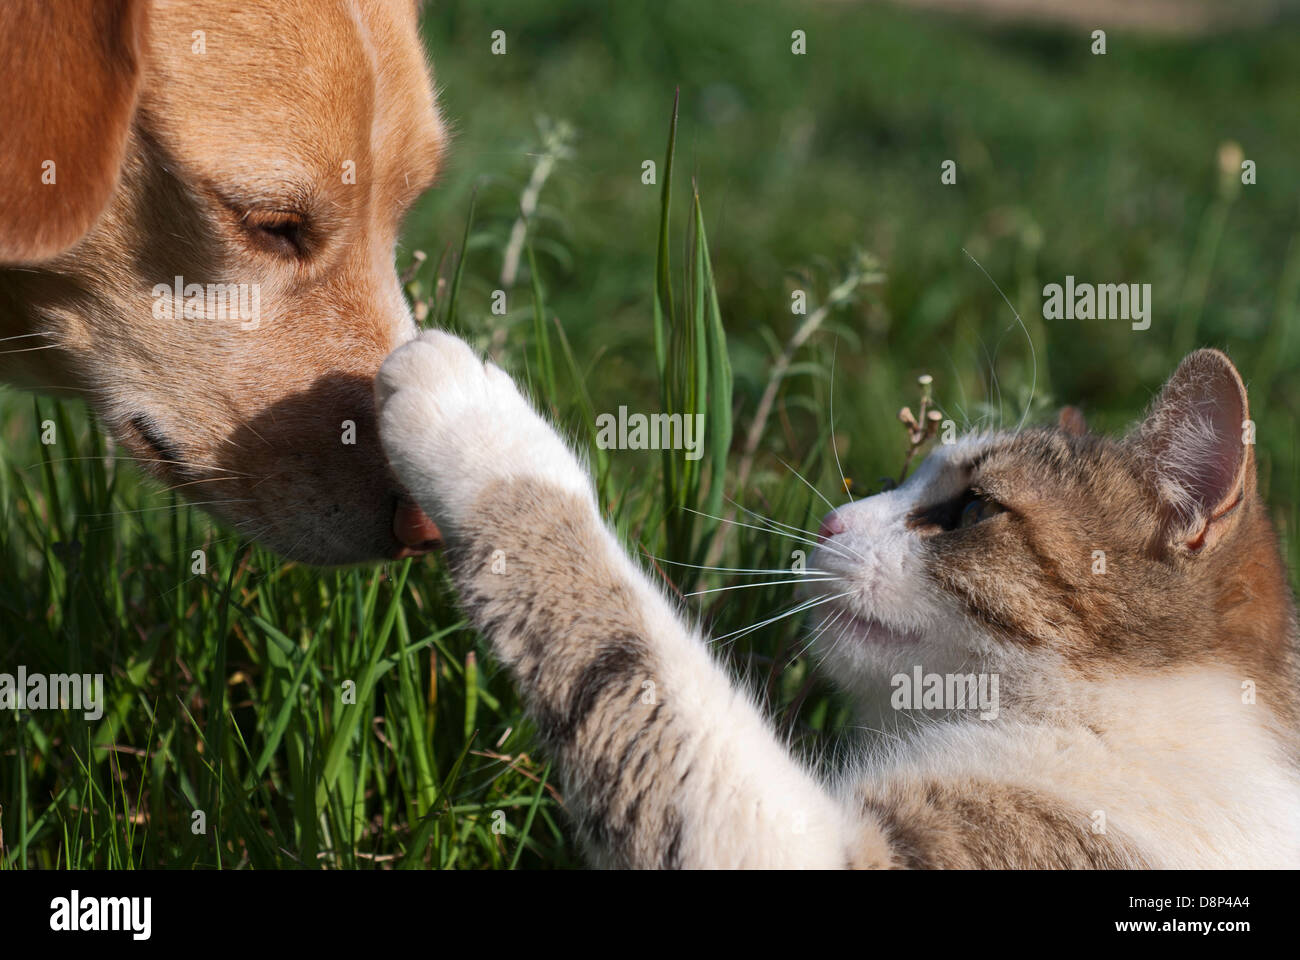 Cat punching dog on the nose - Stock Image